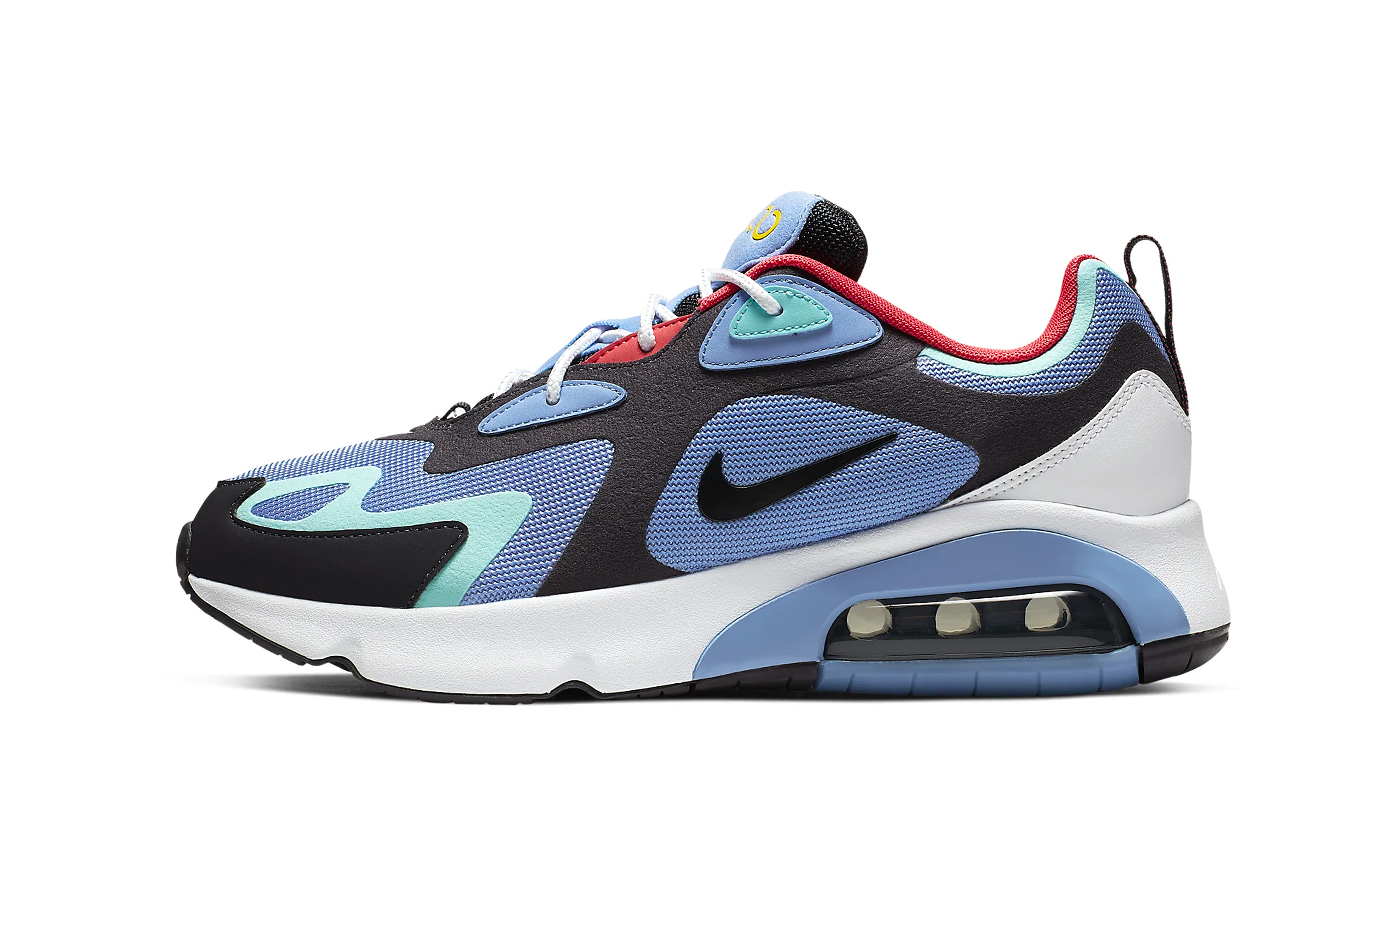 Nike Air Max 200 1992 World Stage Release Info AQ2568-401 blue white red black